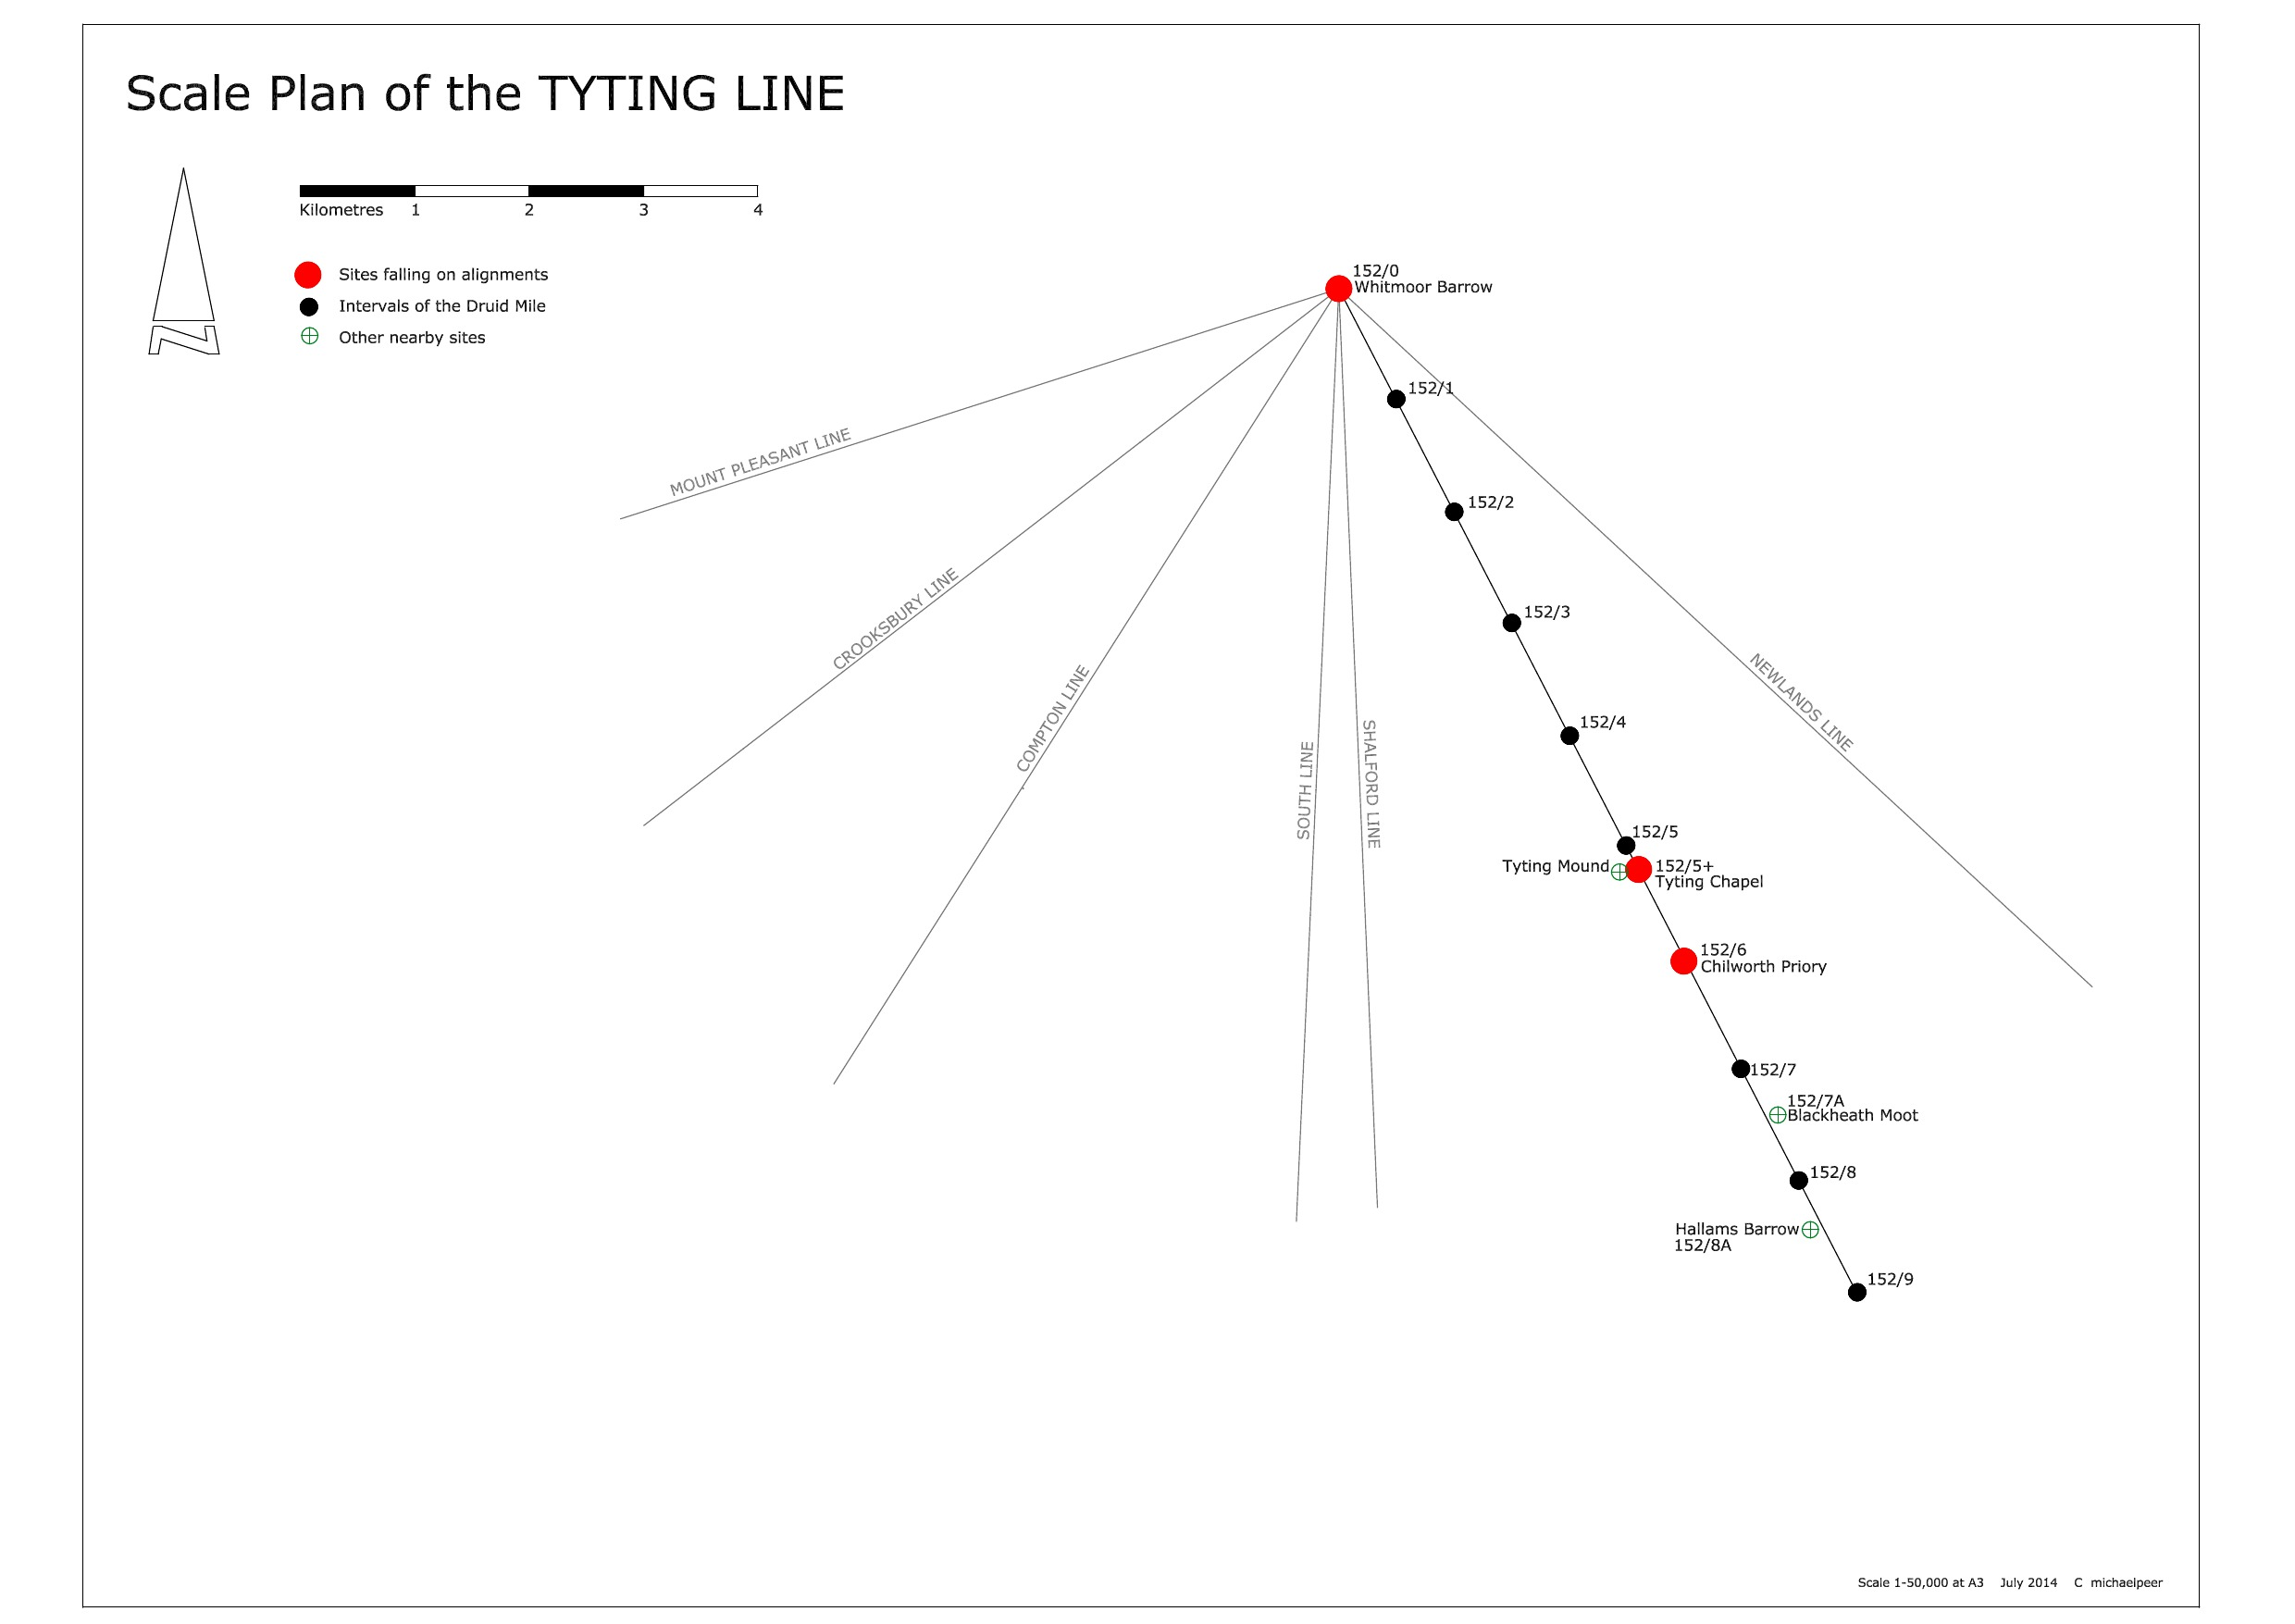 SCALE PLAN TYTING LINE